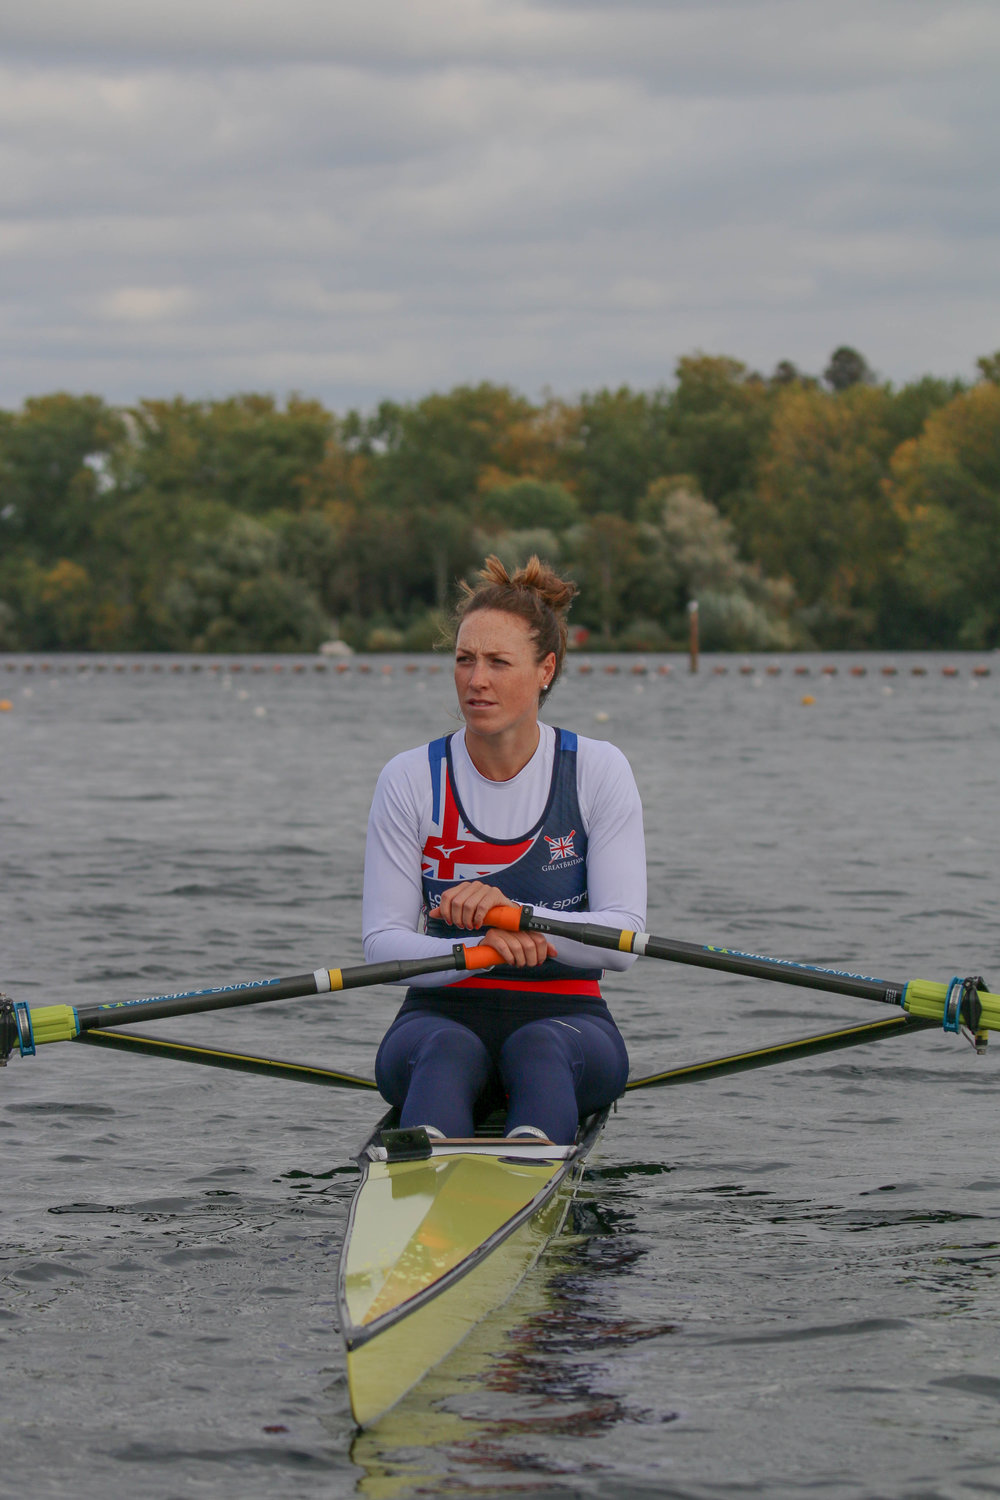 womens-sport-karen-bennett-rowing-athlete41.jpg